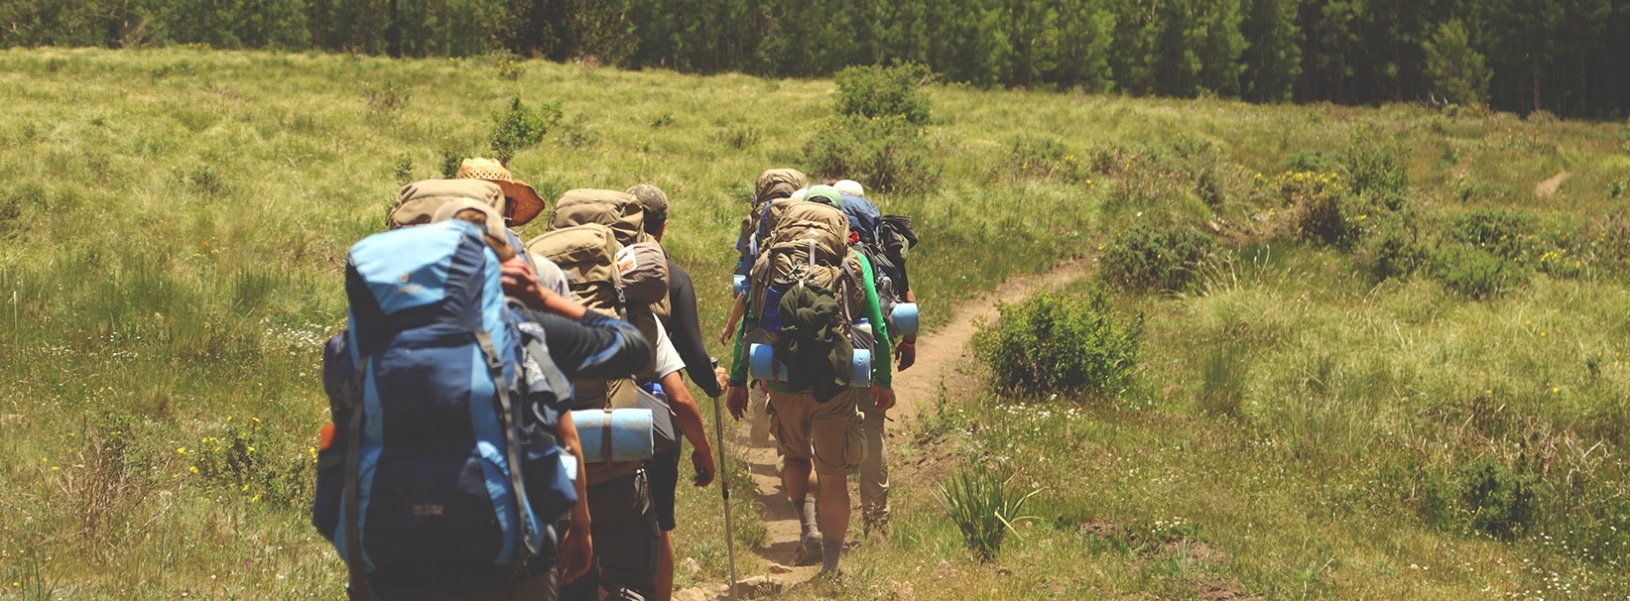 Are backpacker hostels the next hot topic for alternative investment?